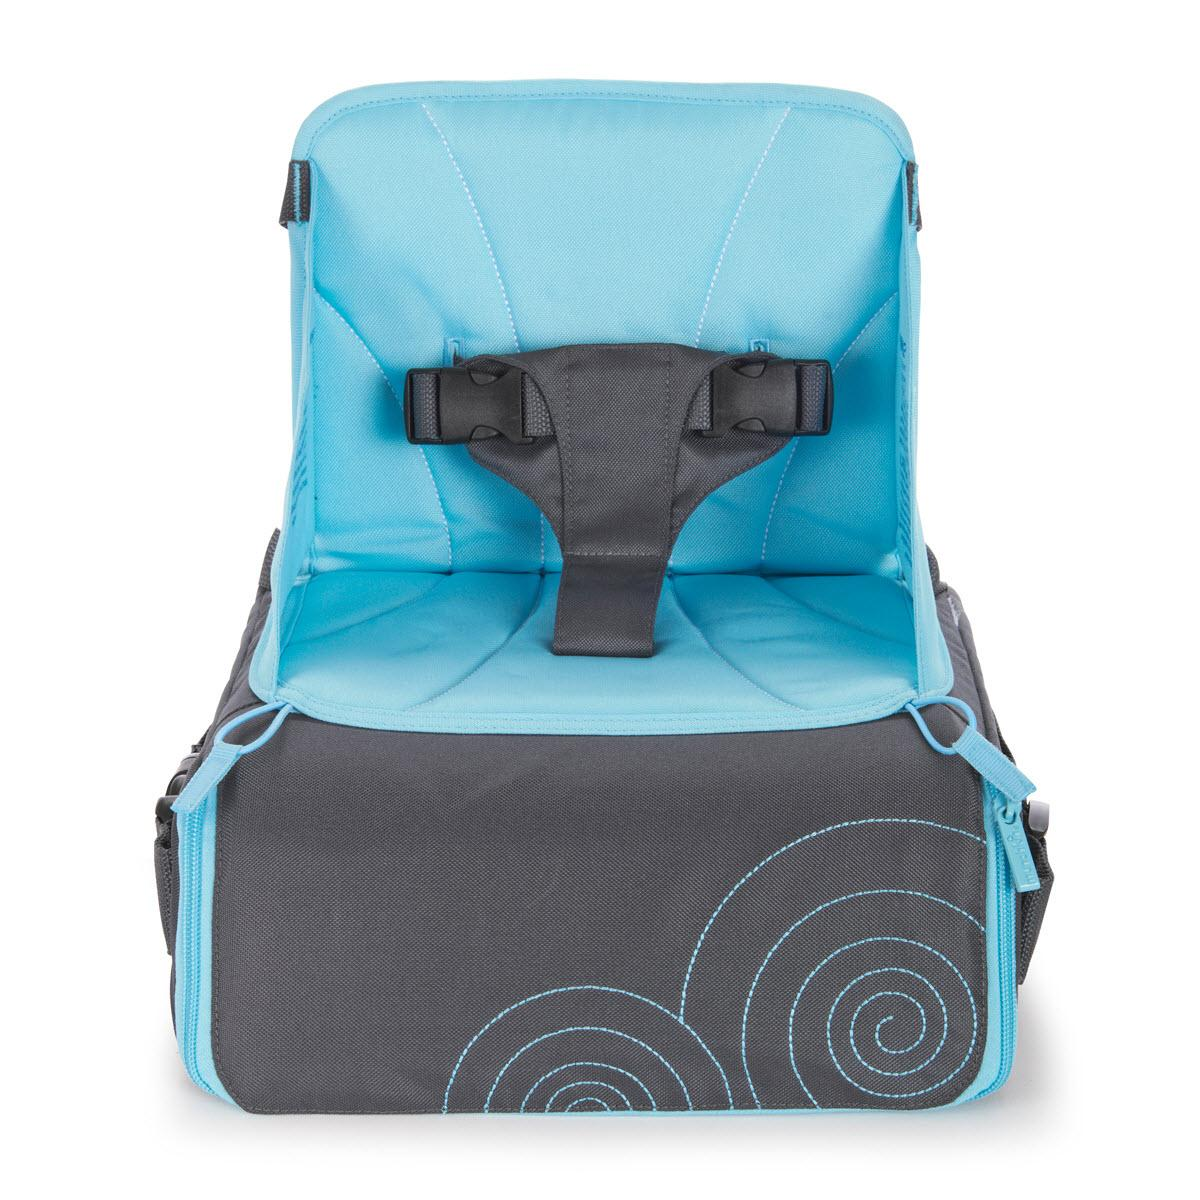 Brica Travel Booster Seat Best Price